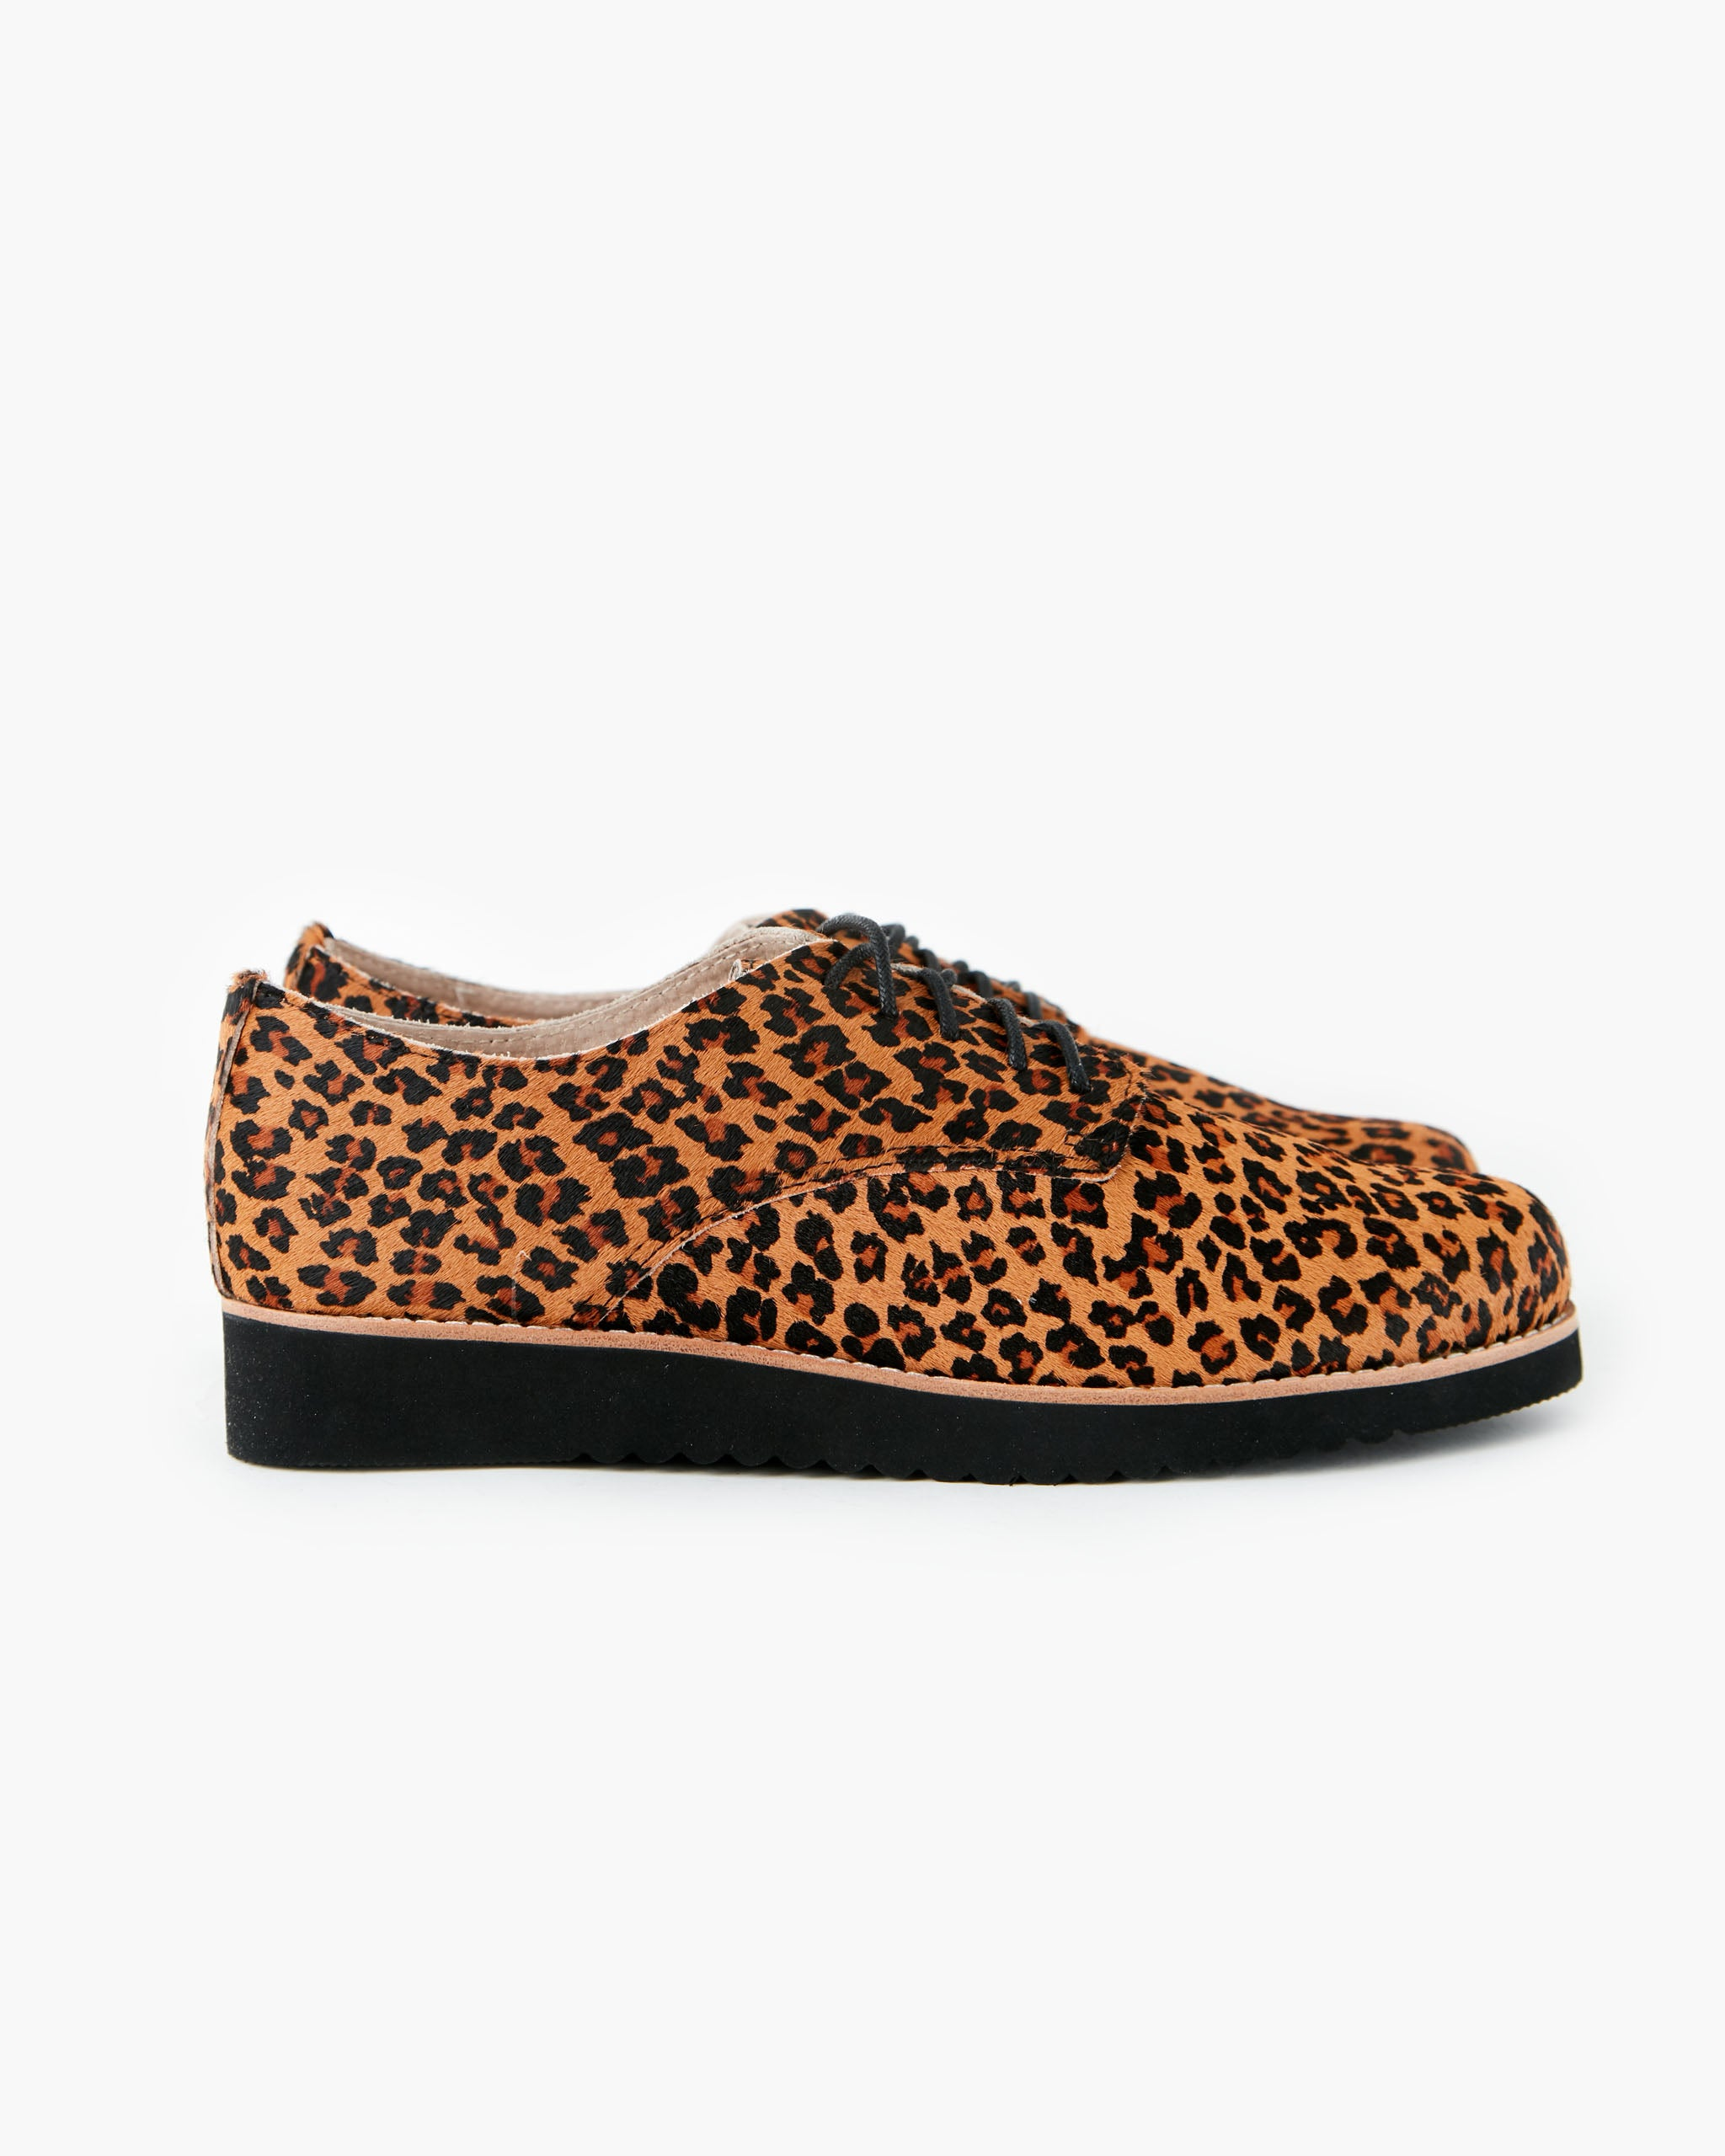 Mila Leather Lace Up - Tan Leopard Pony